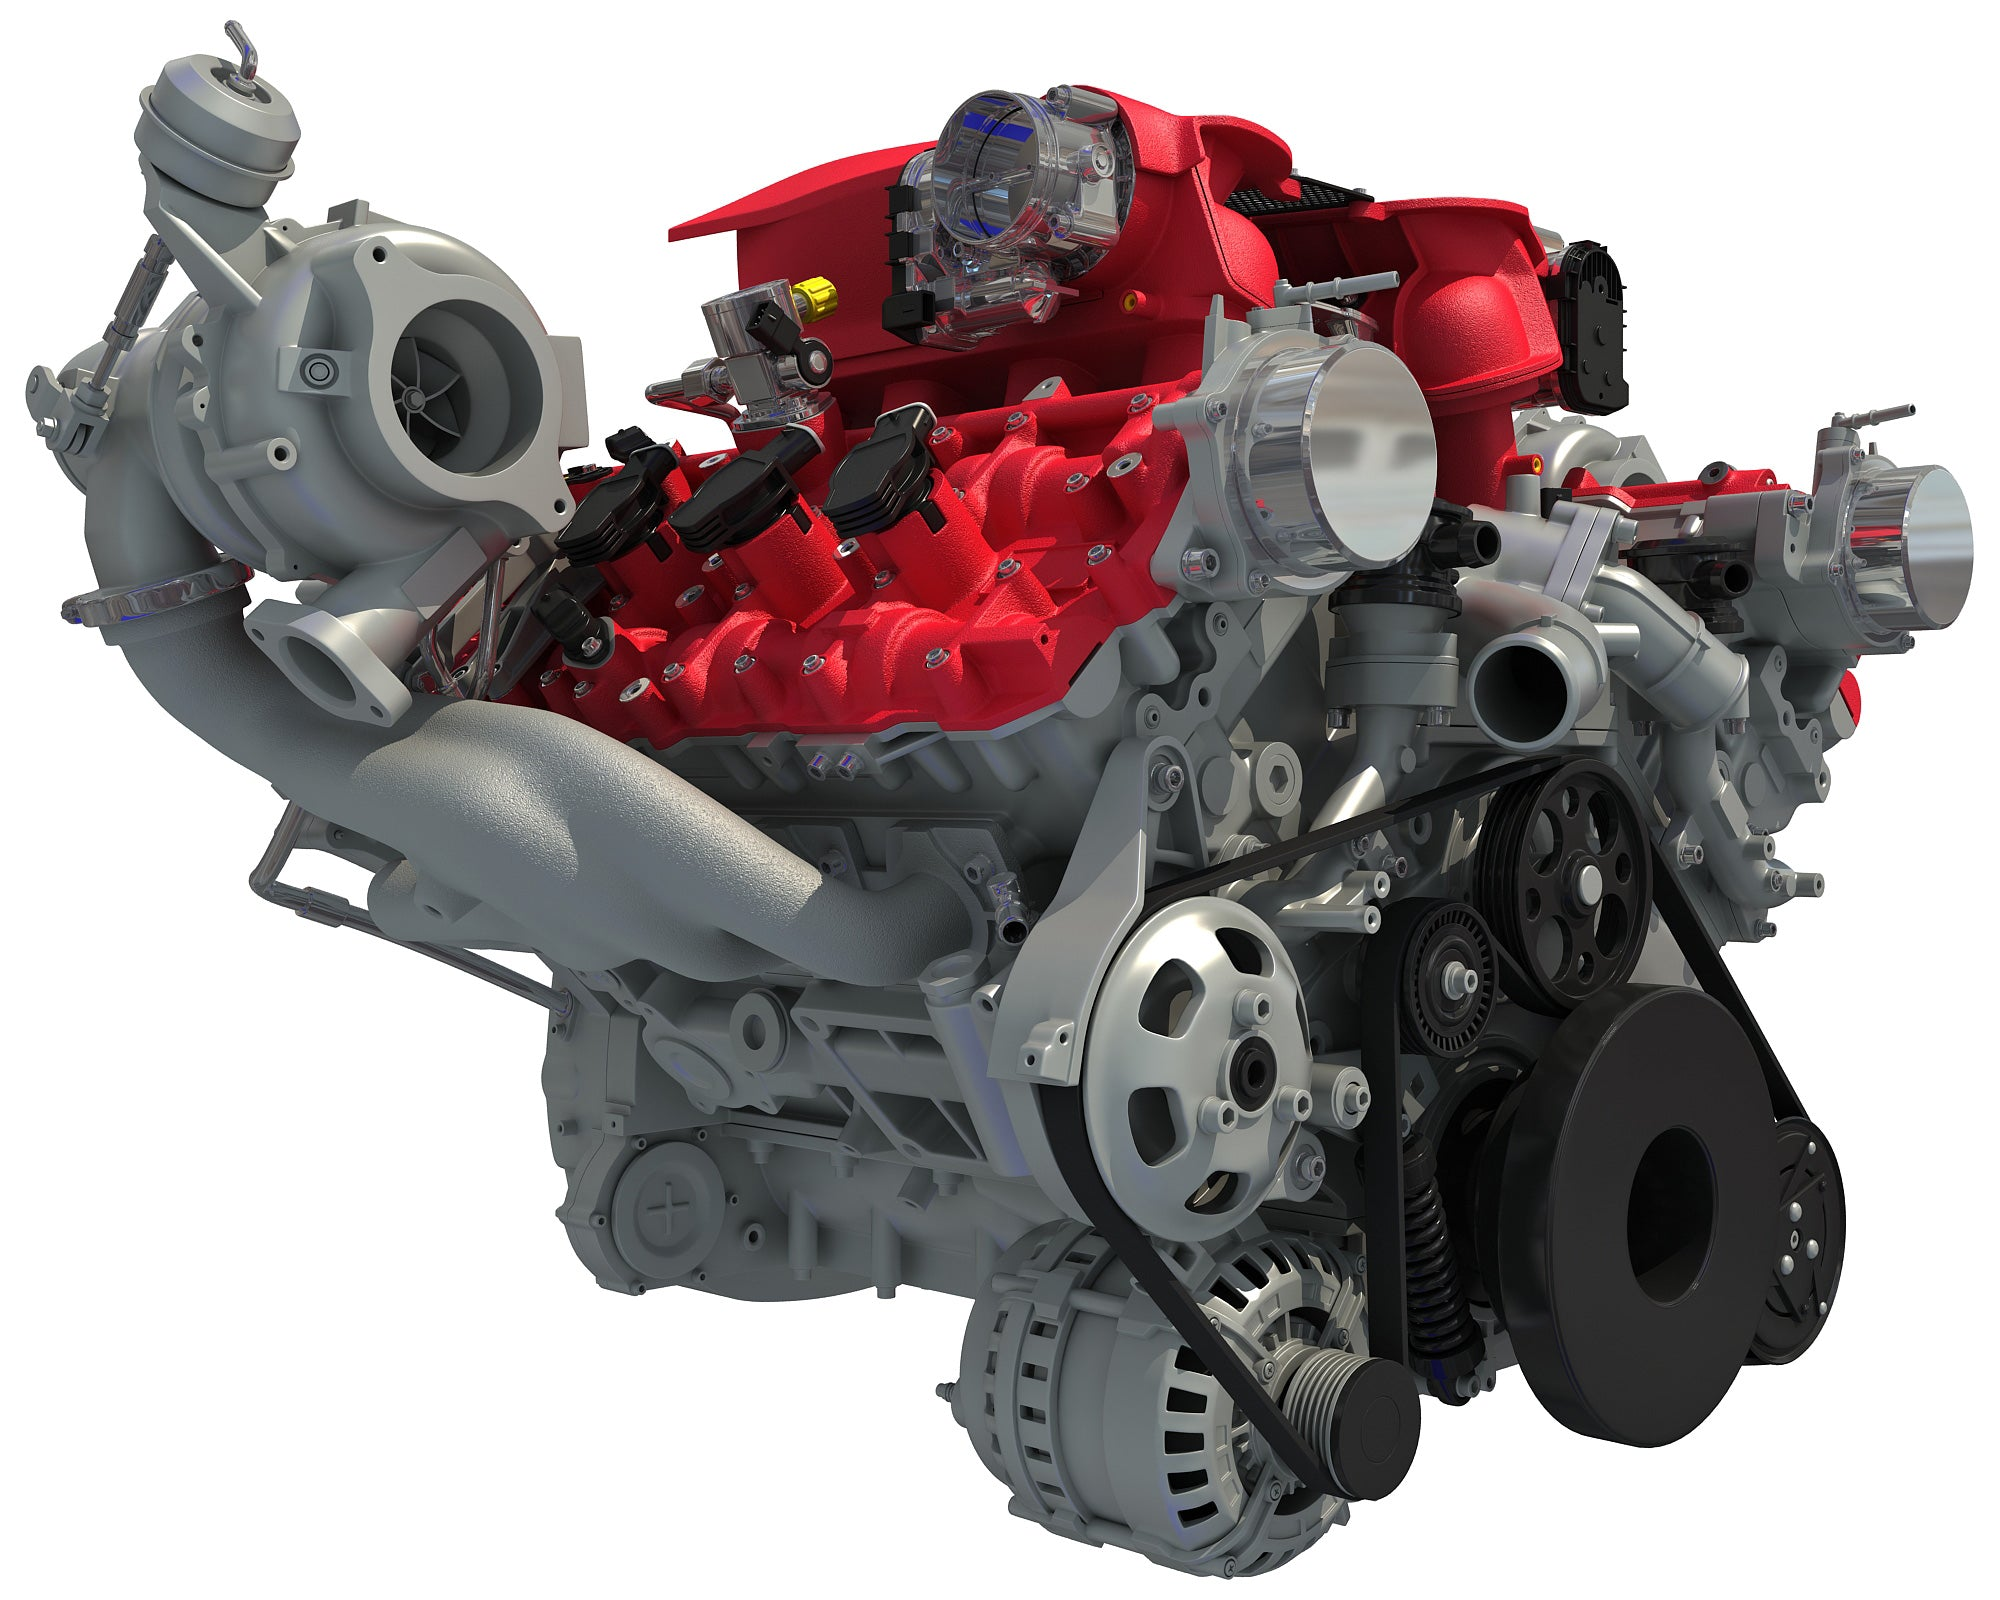 Ferrari Turbocharged V8 Engine